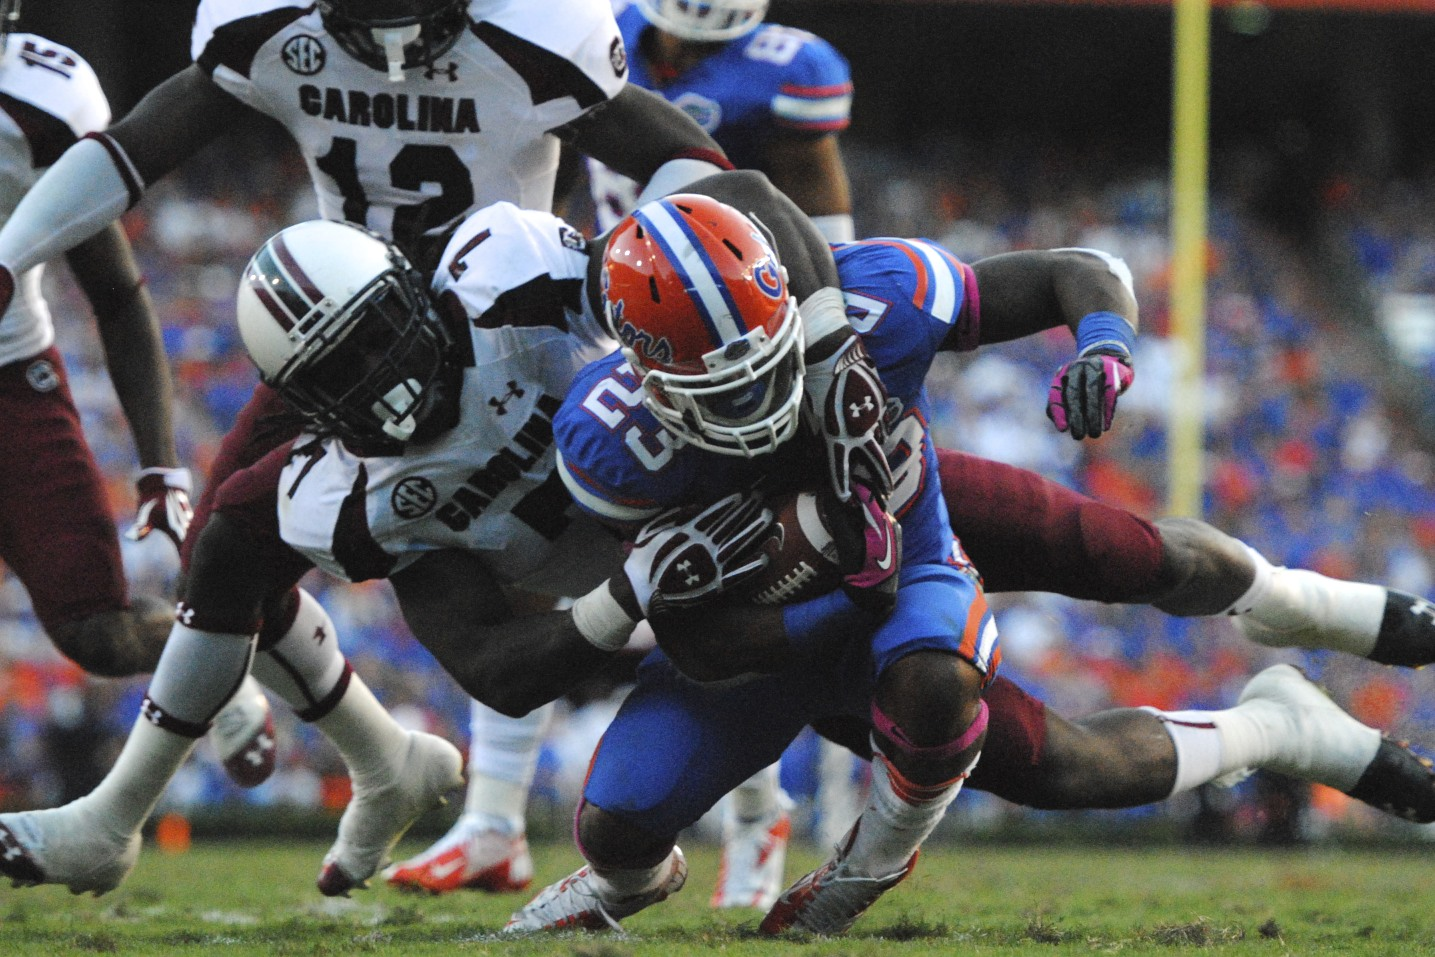 Mike Gillislee of the Florida Gators gets tackled in the second half of Saturday's game.